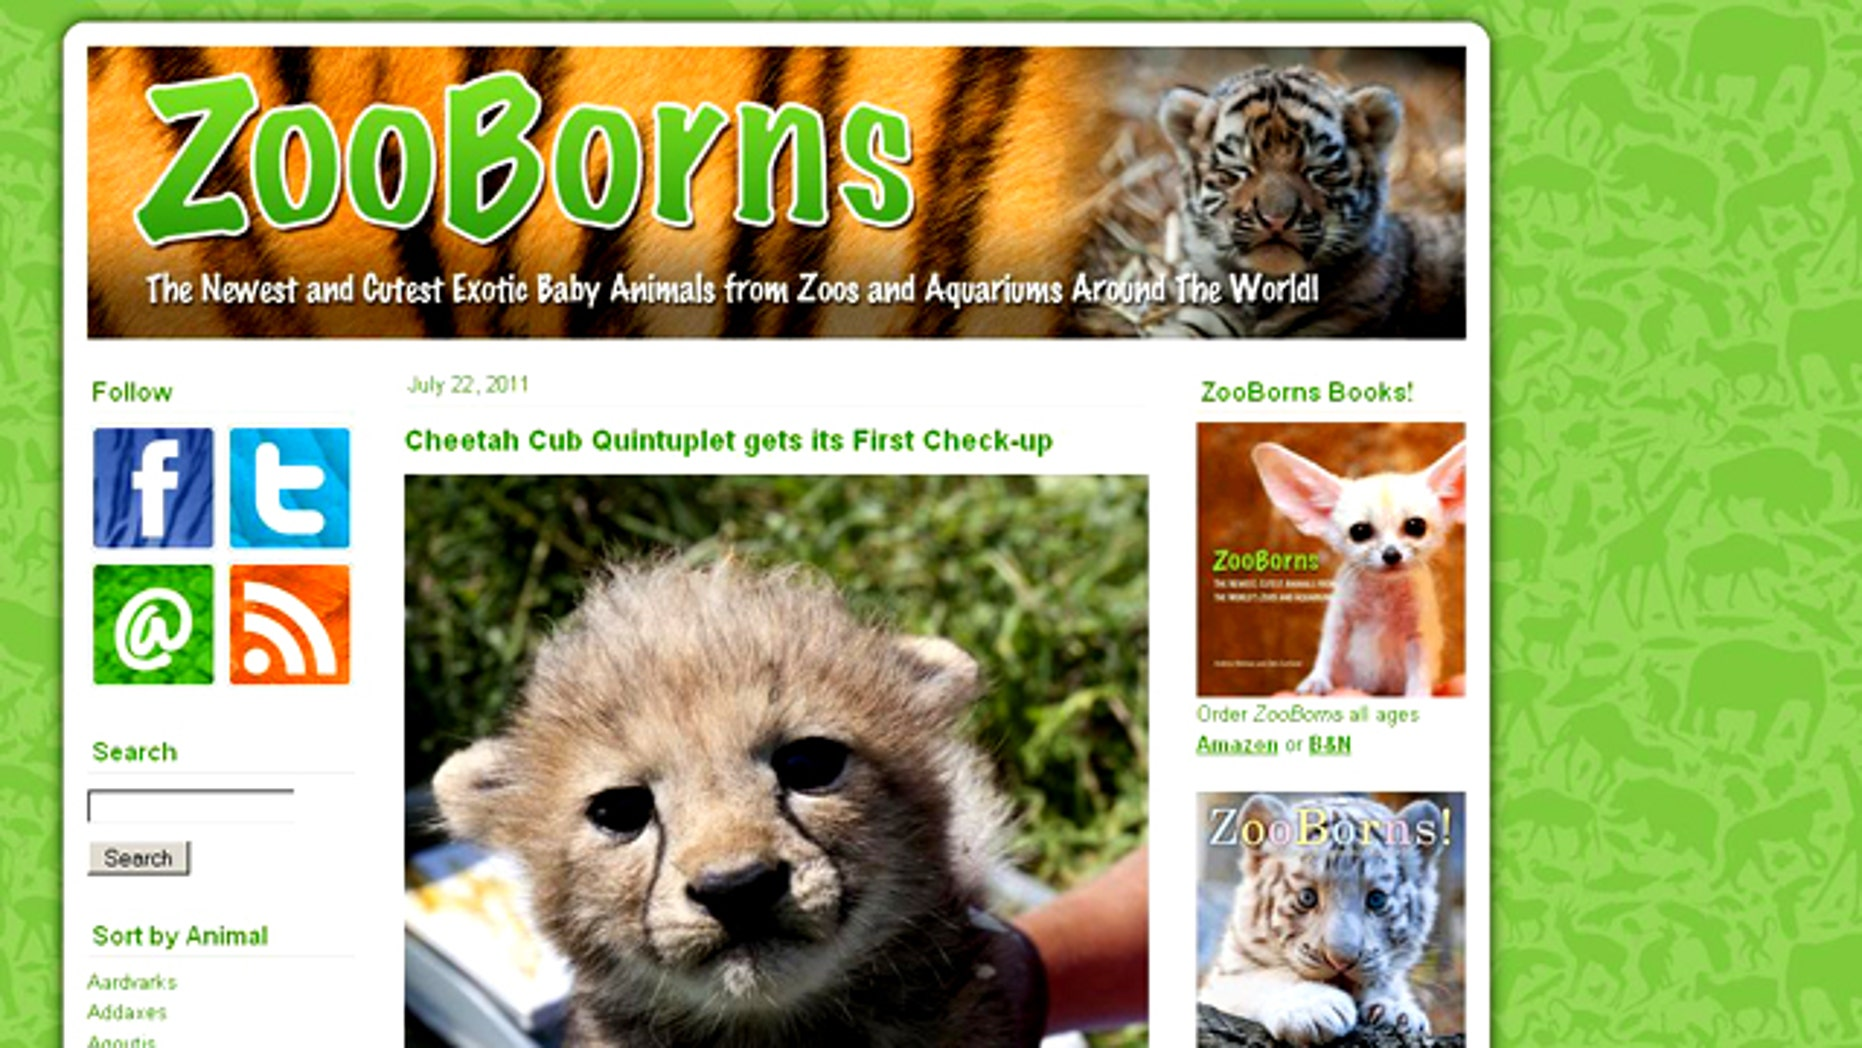 The ZooBorns.com website gives you a daily dose of cuteness: the newest baby animals from zoos around the world.